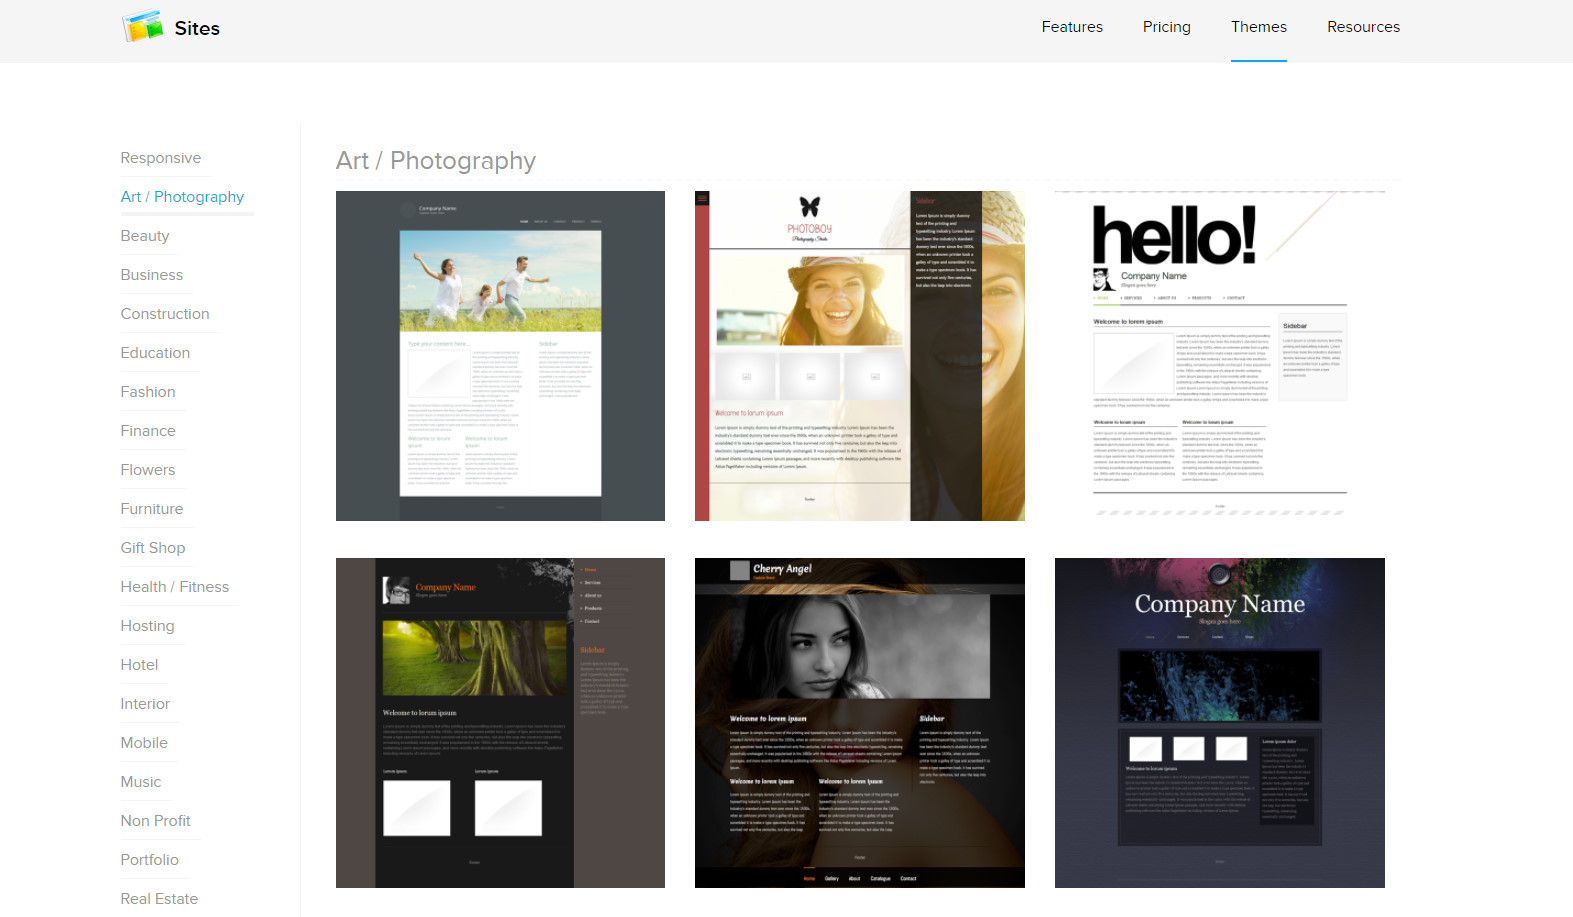 zoho sites javascript, zoho sites alternative, zoho sites templates